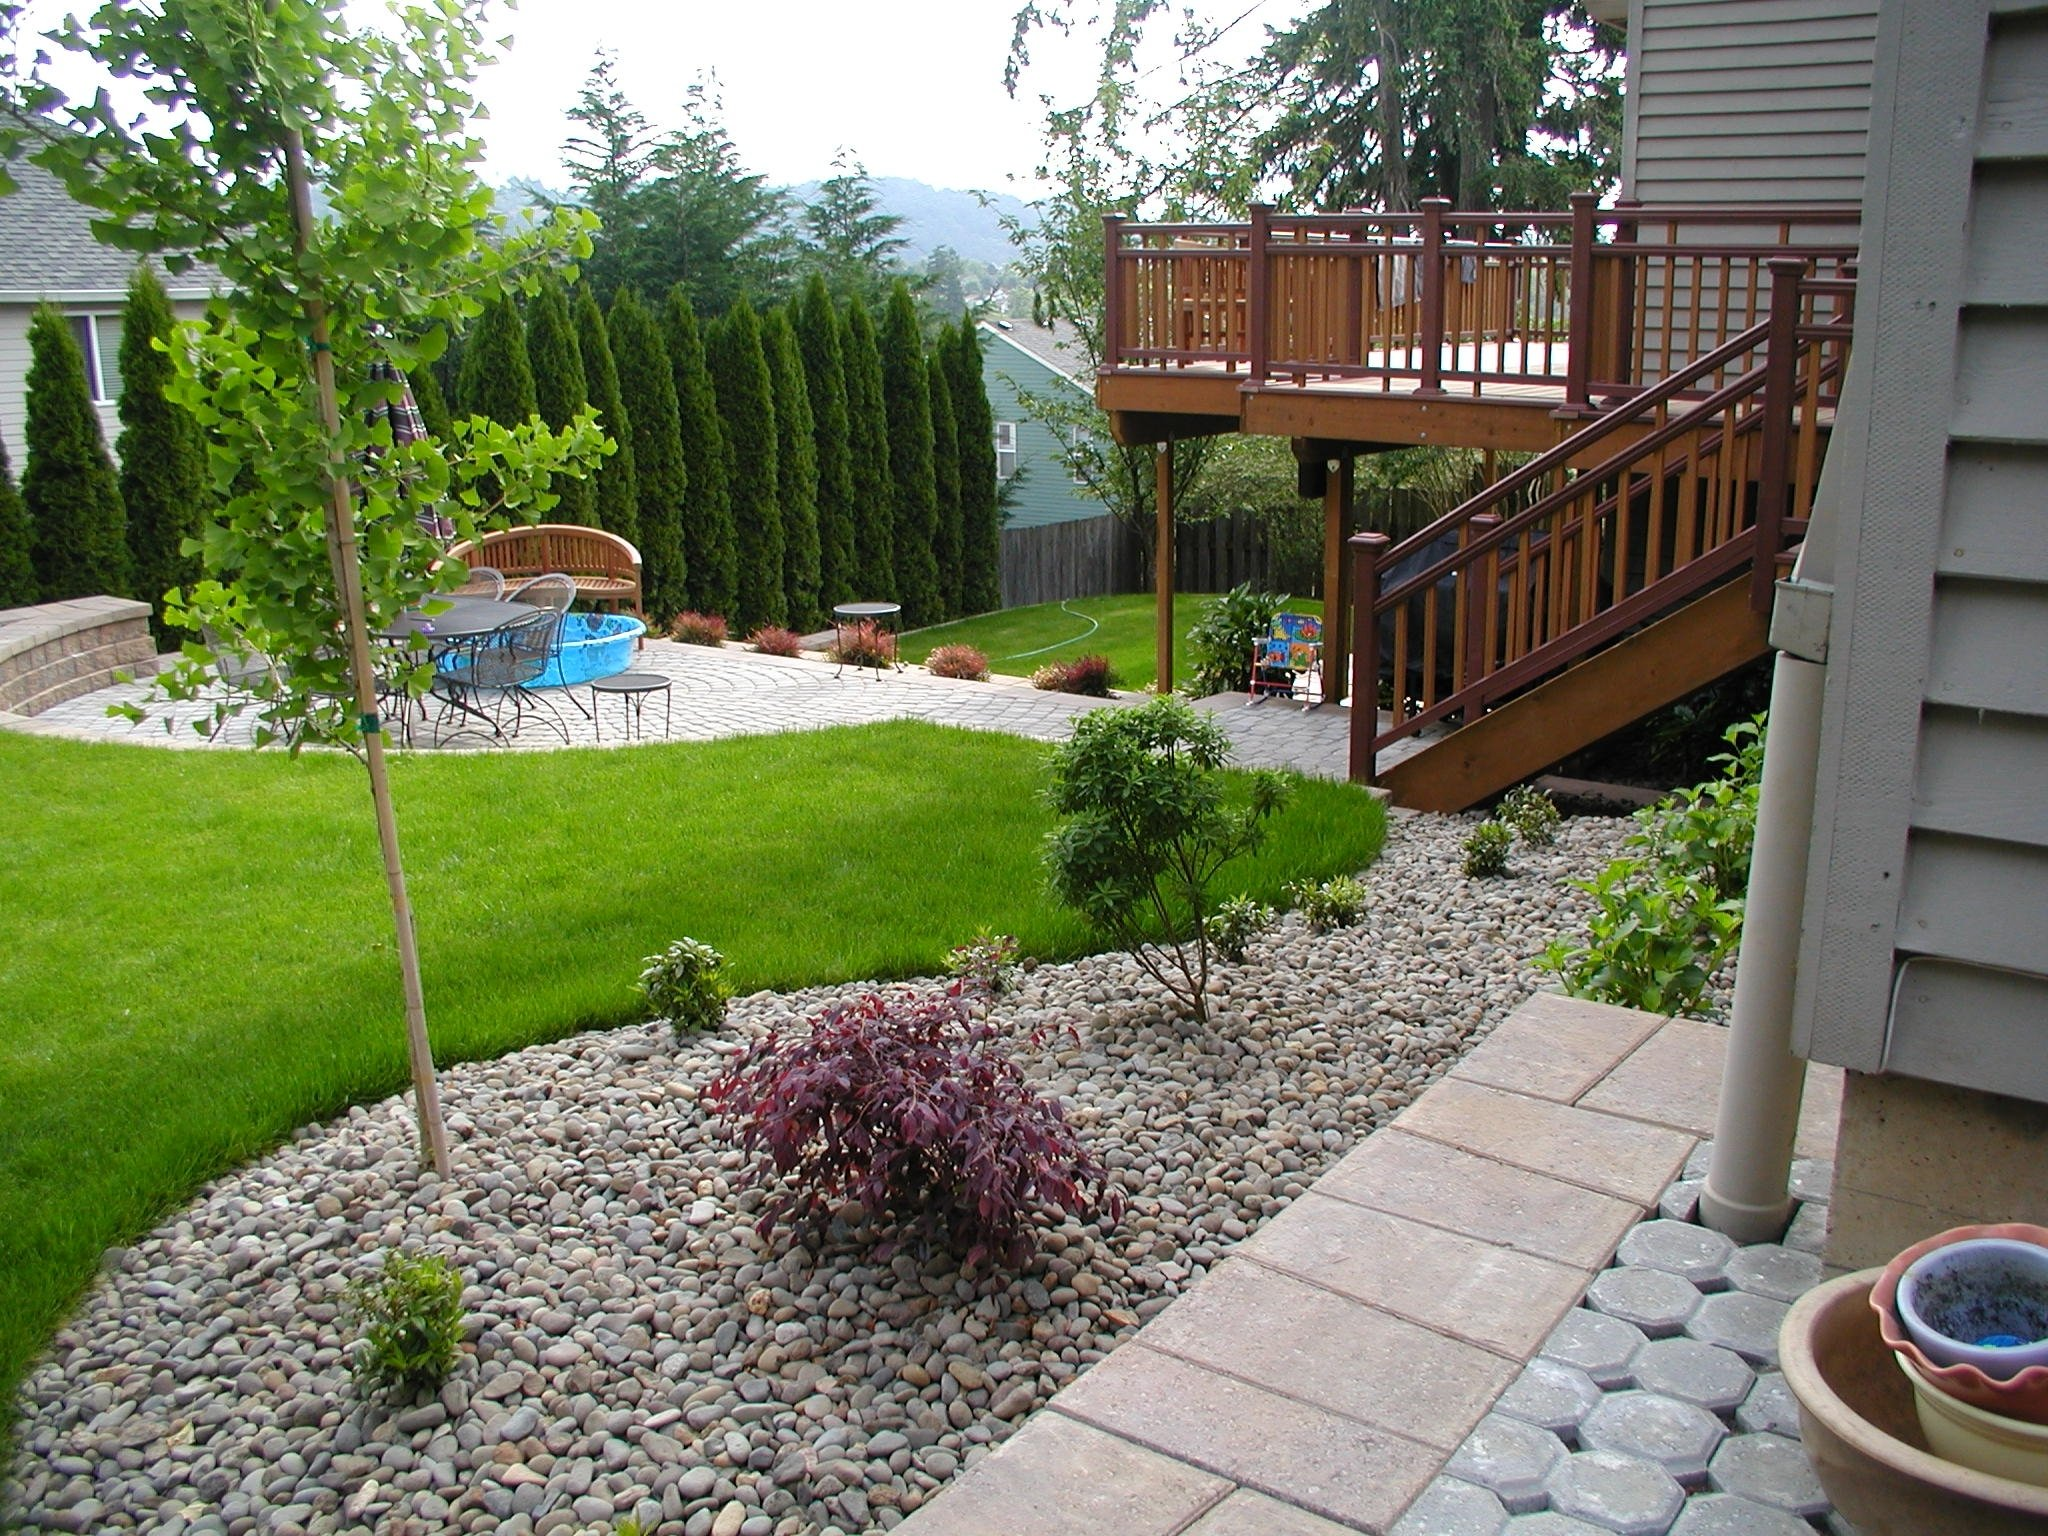 landscaping design ideas for backyard cute with images of